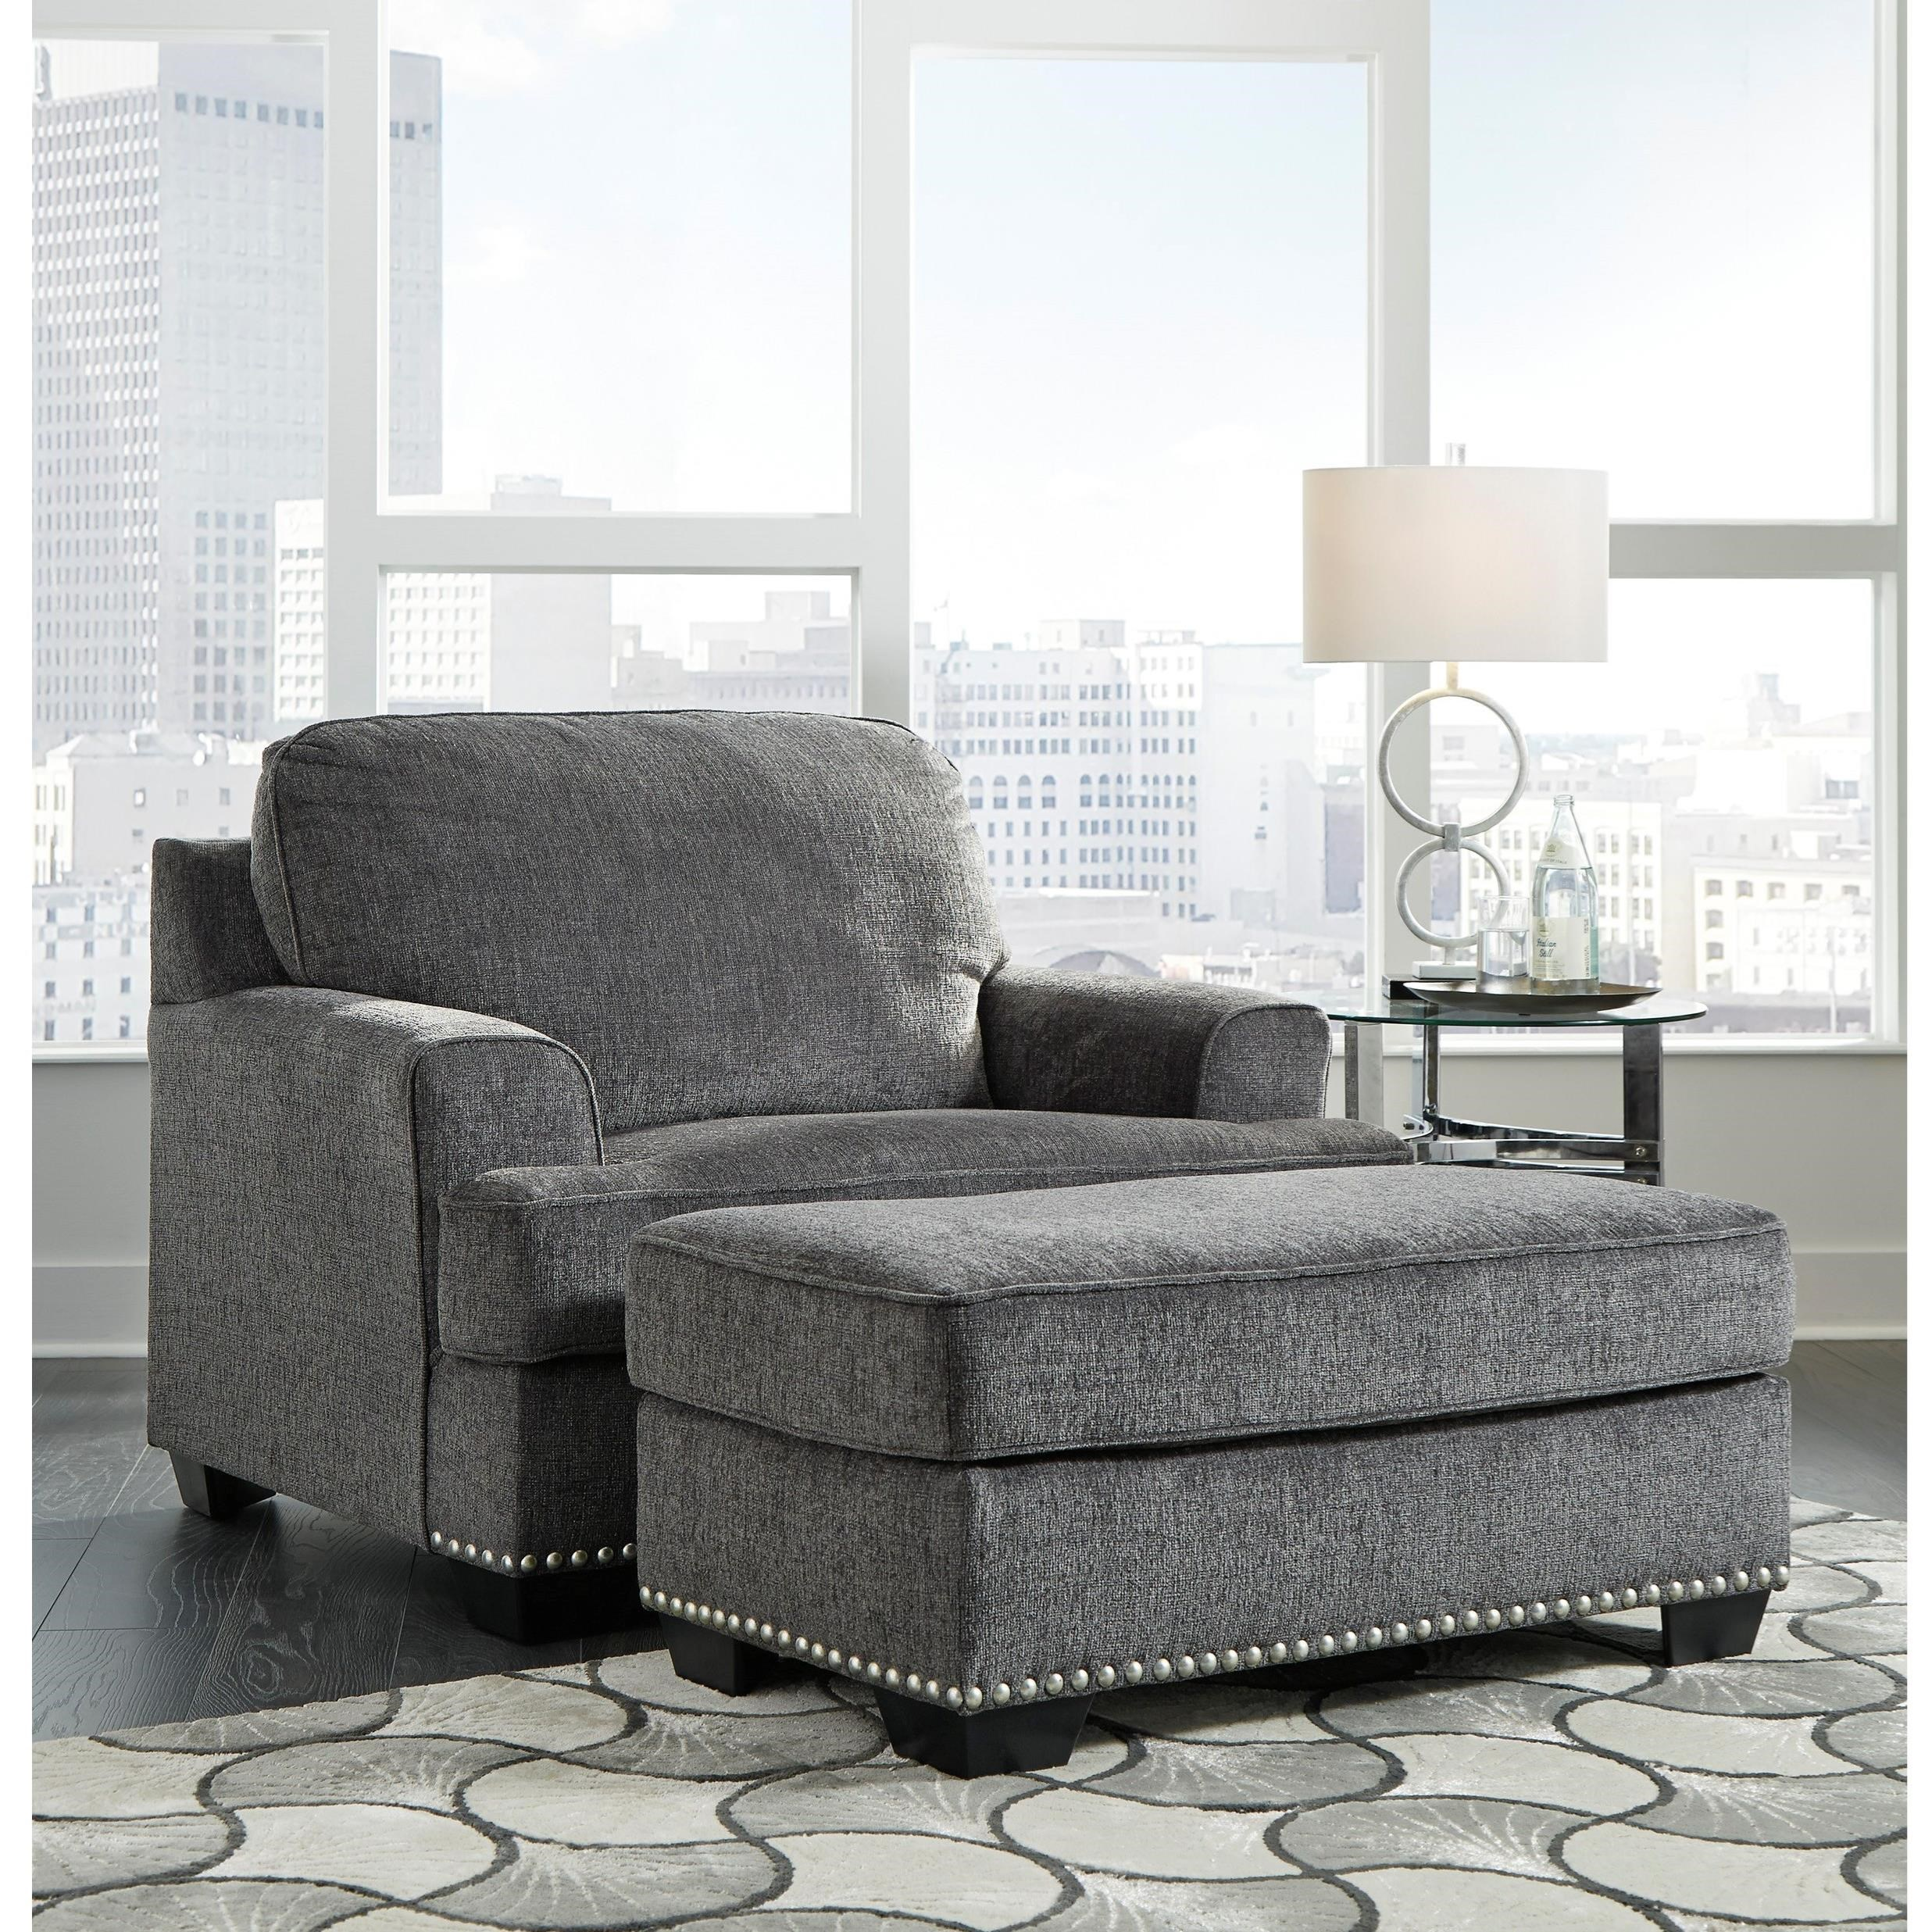 Chair Ottoman Locklin Transitional Chair And A Half With Ottoman By Benchcraft At Lindy S Furniture Company